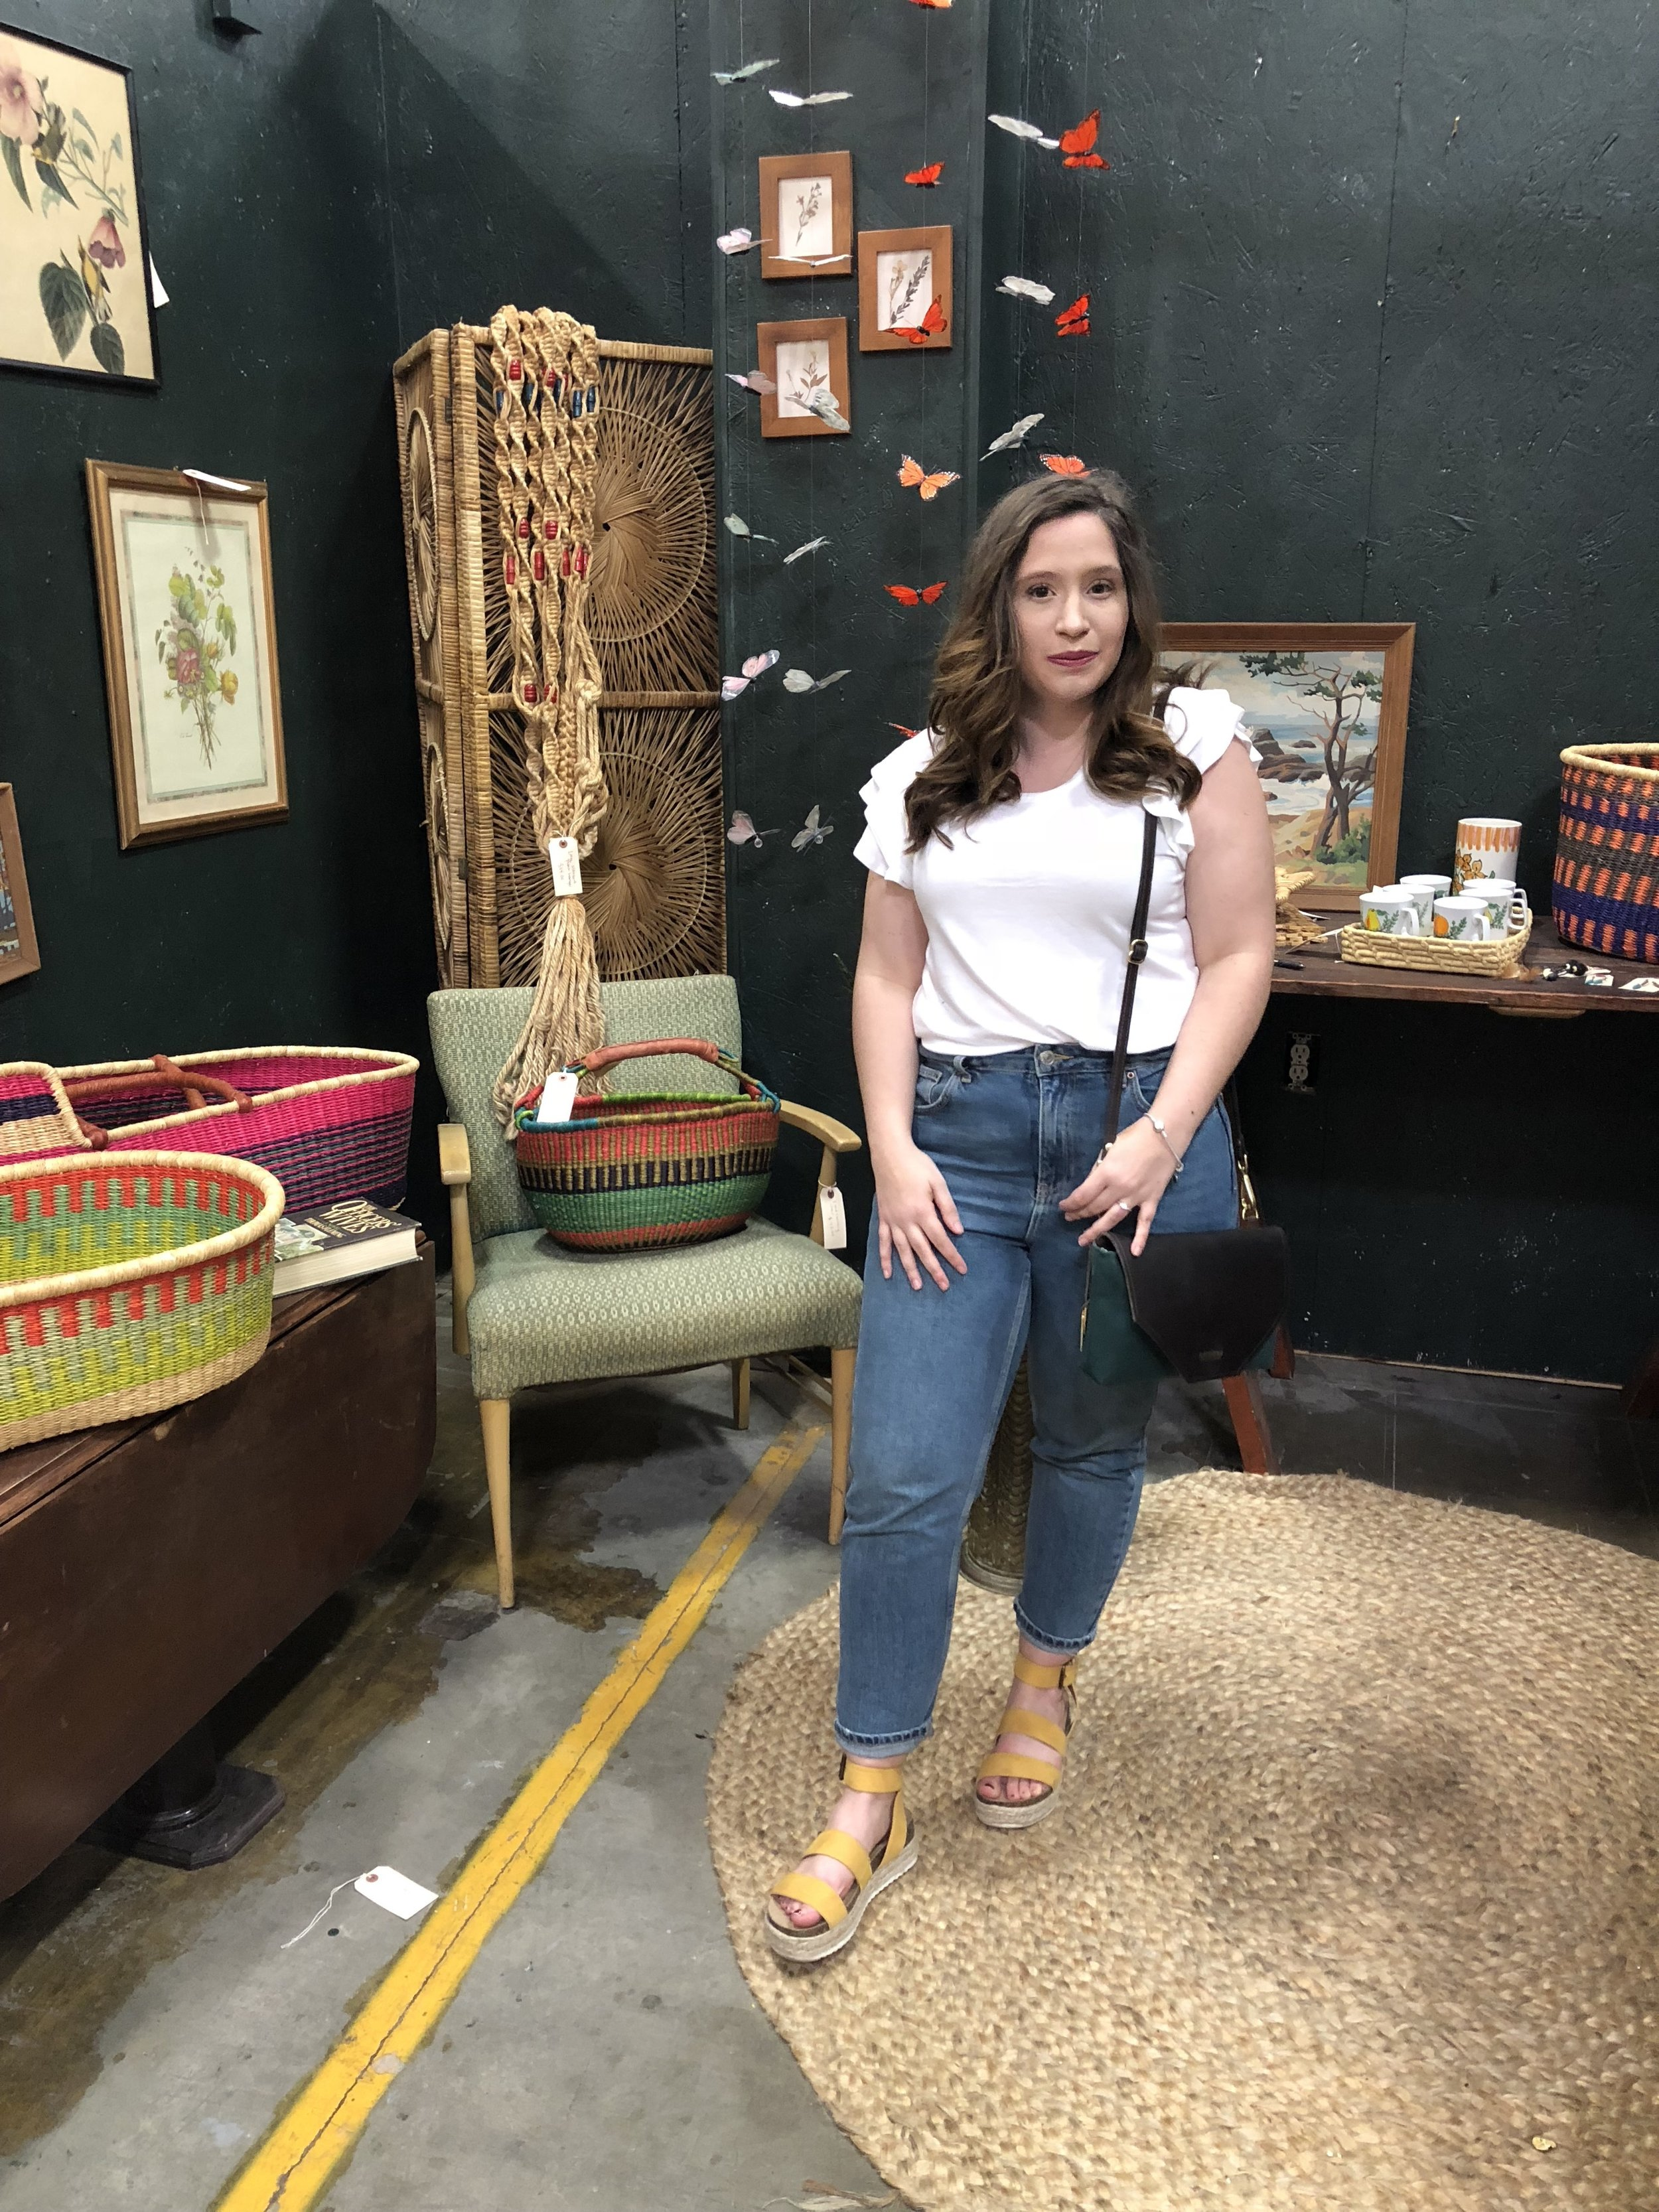 How to Wear Mom Jeans for Girl's with Curves, How to Style Mom Jeans, Mom Jeans for Curvy Girls, How to Style Mom Jeans when you Have Hips